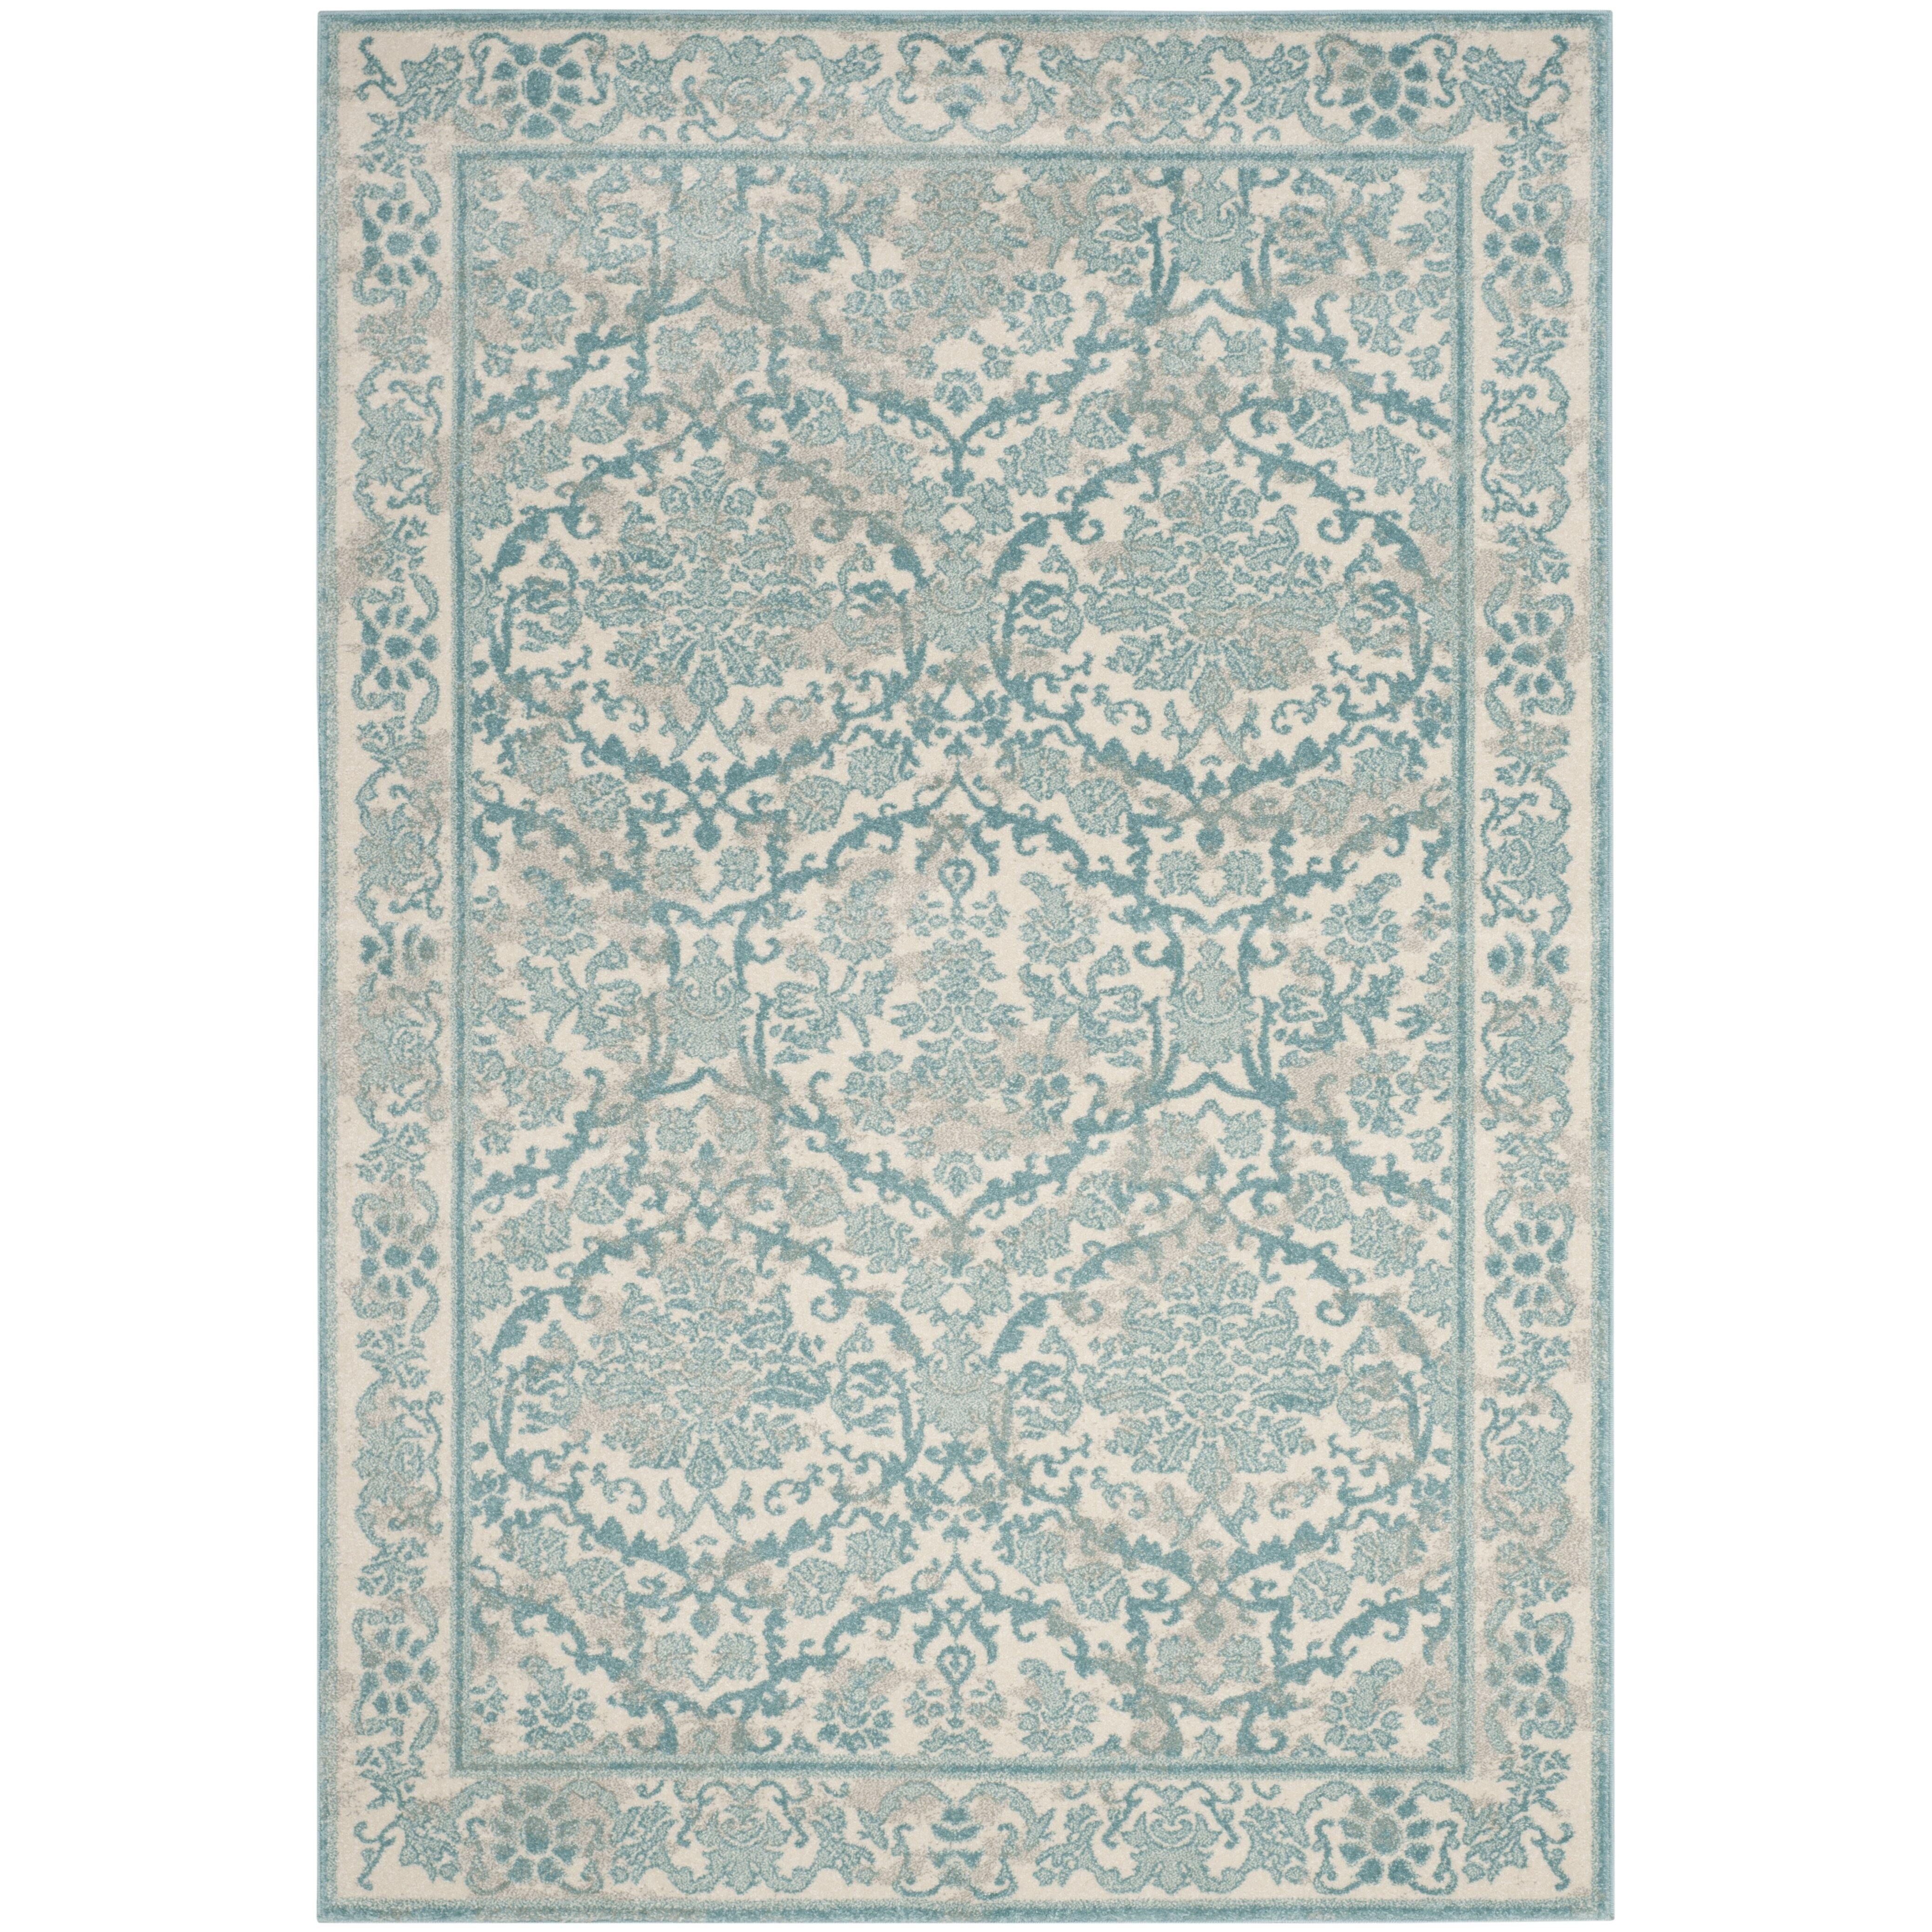 Rug For Grey And Blue Room With Light Brown Carpet